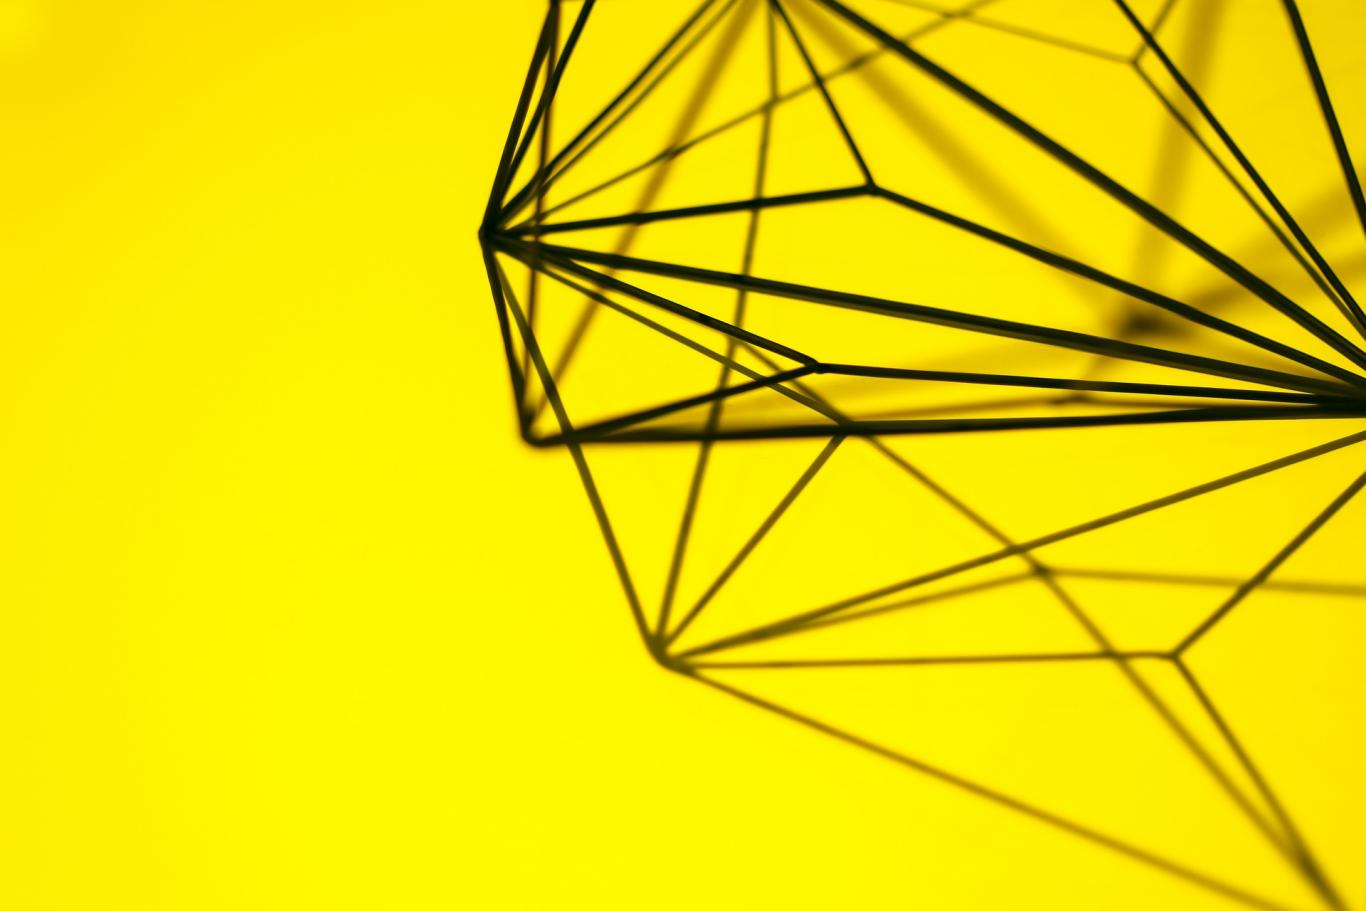 yellow-metal-design-decoration